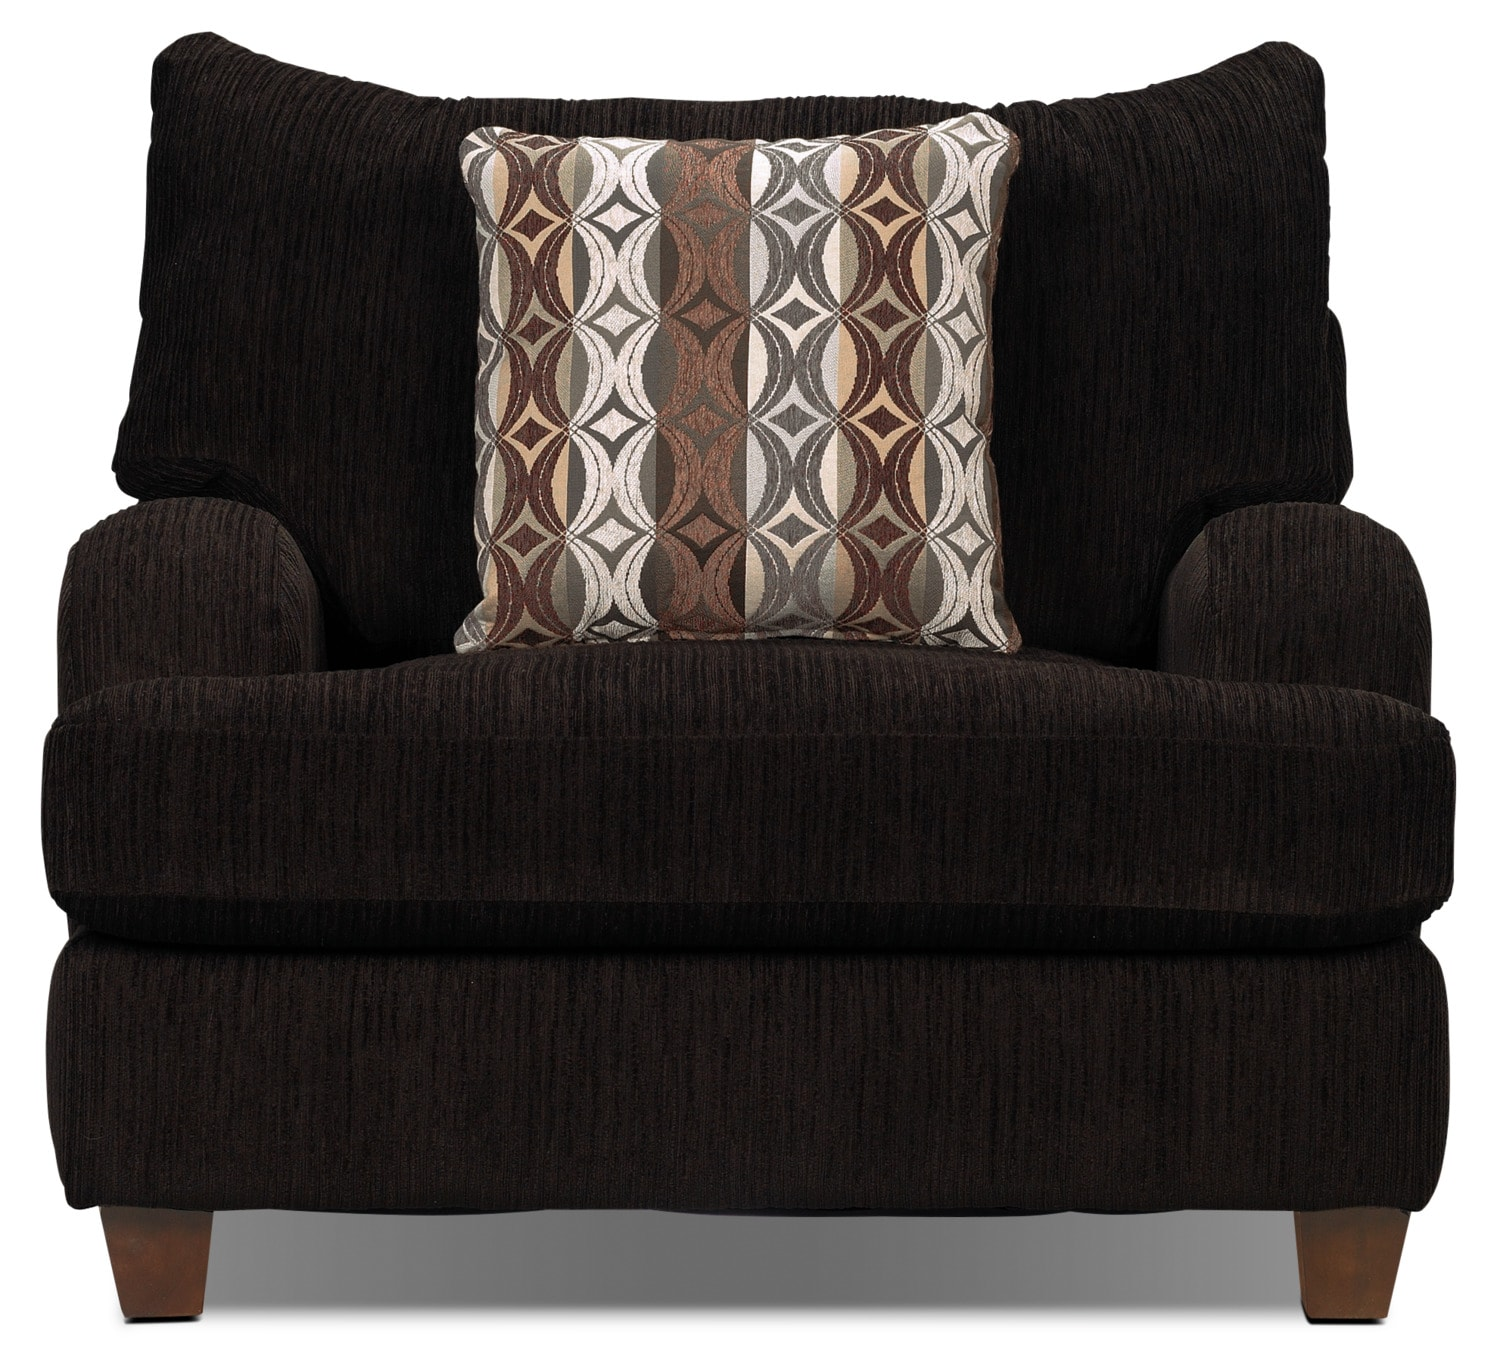 Living Room Furniture - Putty Chenille Chair- Chocolate